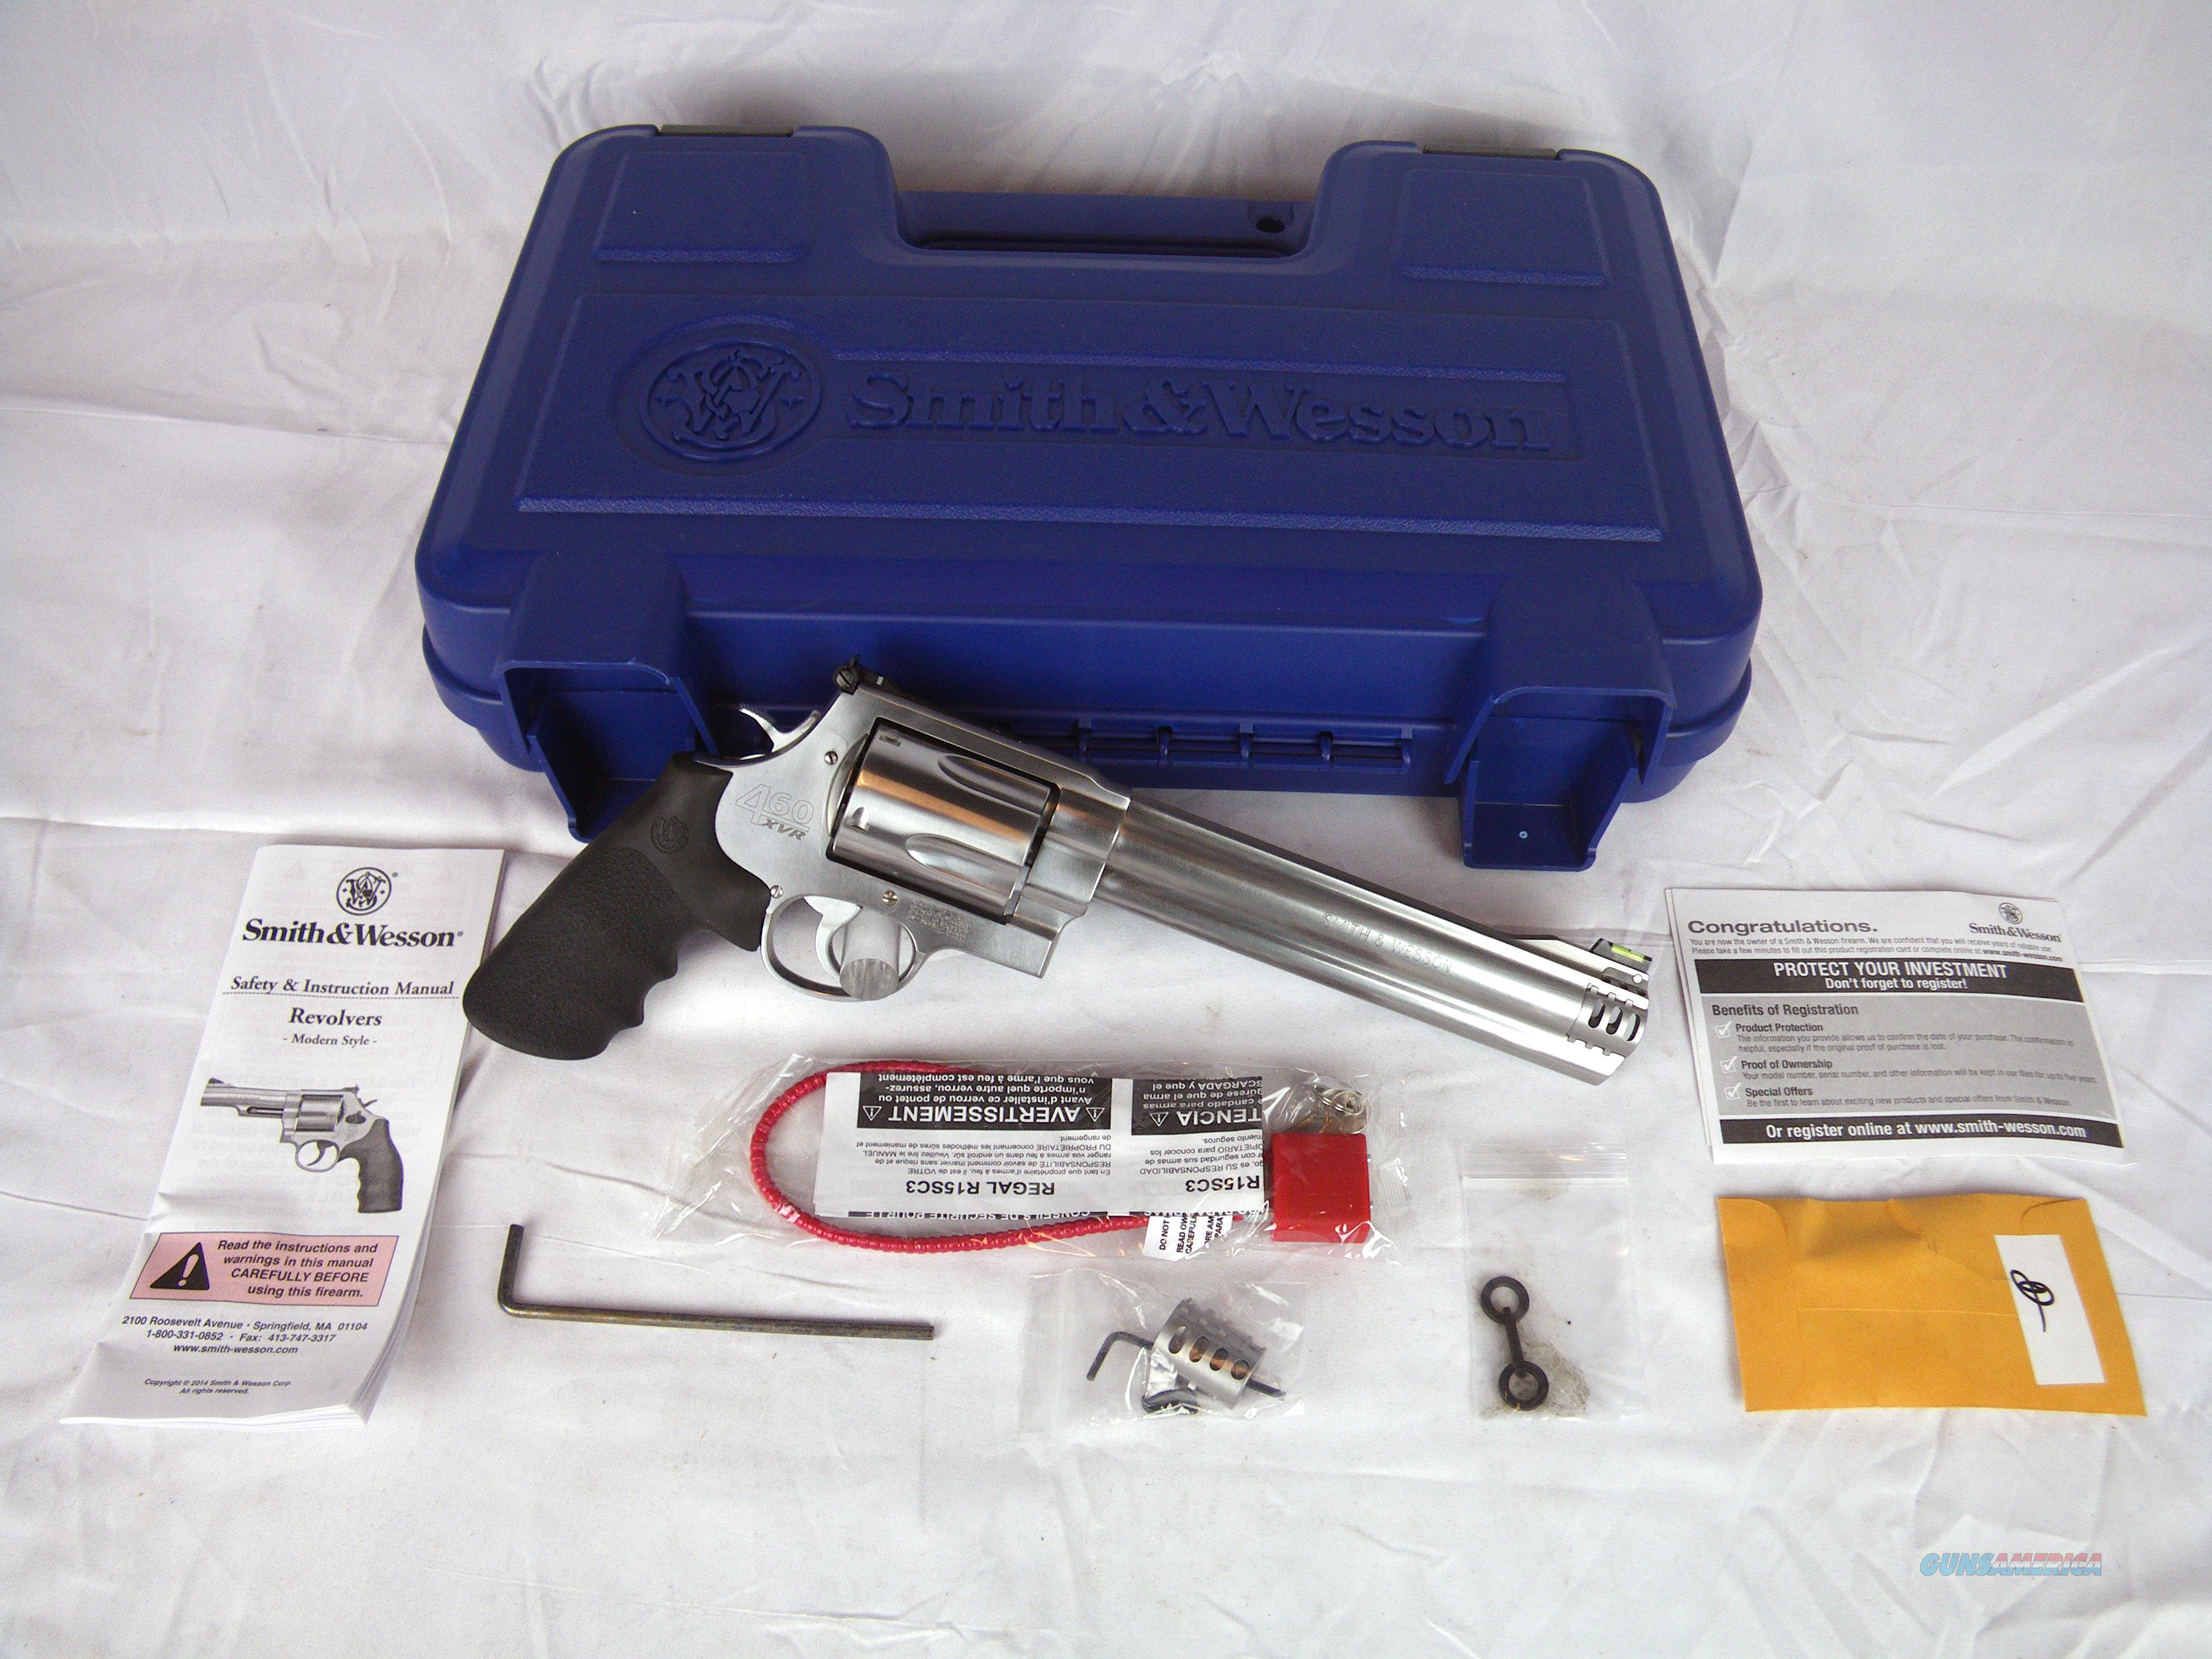 """Smith & Wesson 460XVR 460 S&W 8.38"""" Stainless NEW #163460  Guns > Pistols > Smith & Wesson Revolvers > Full Frame Revolver"""